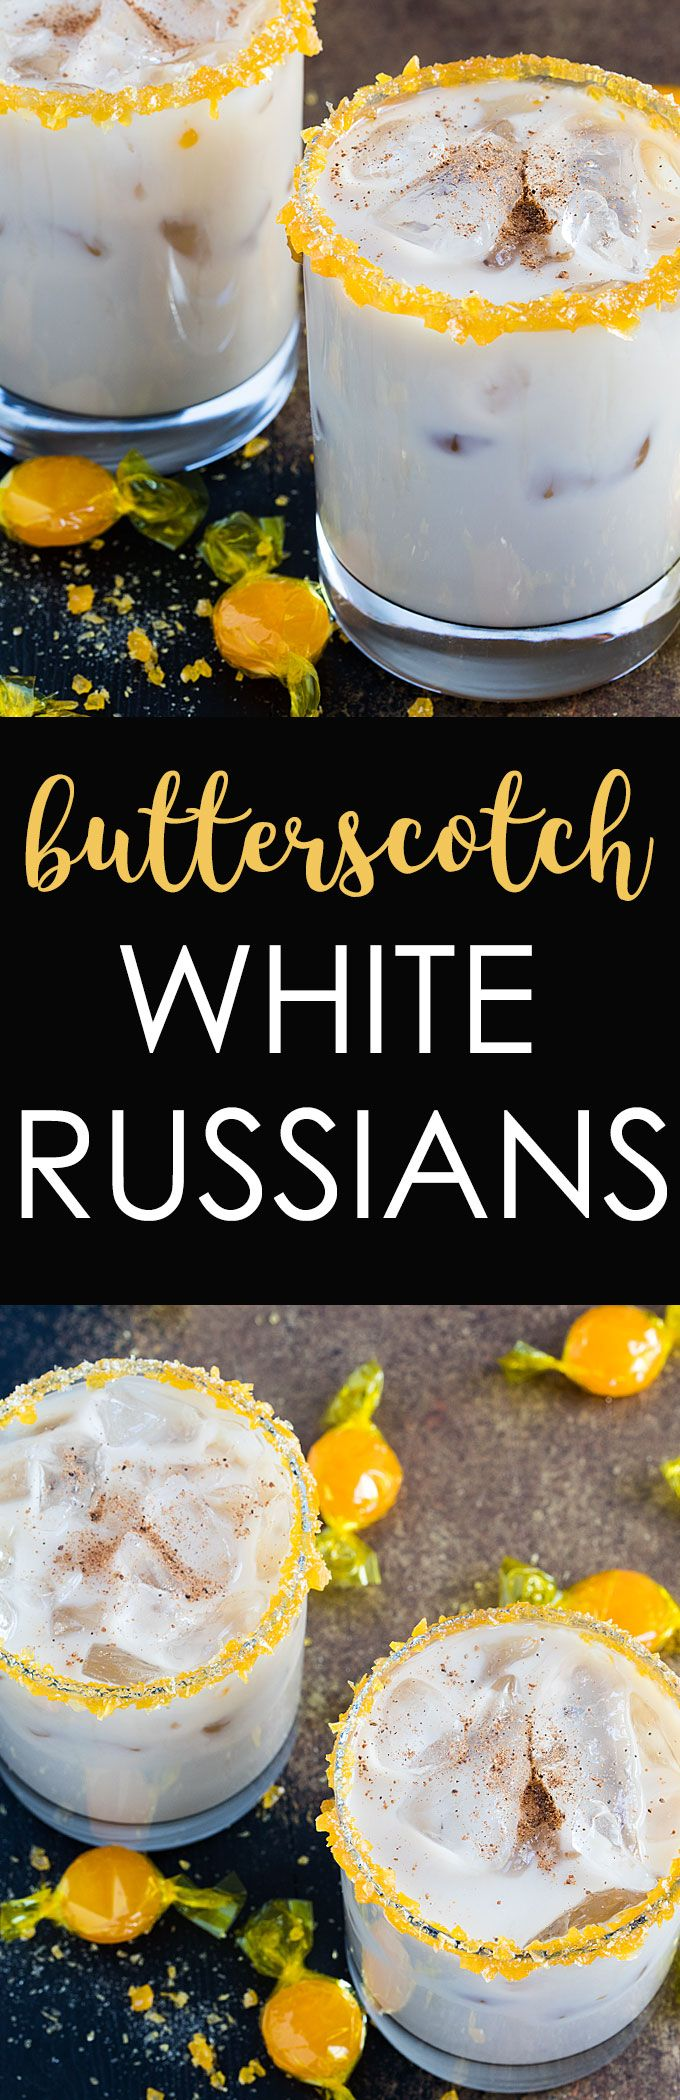 Butterscotch White Russians